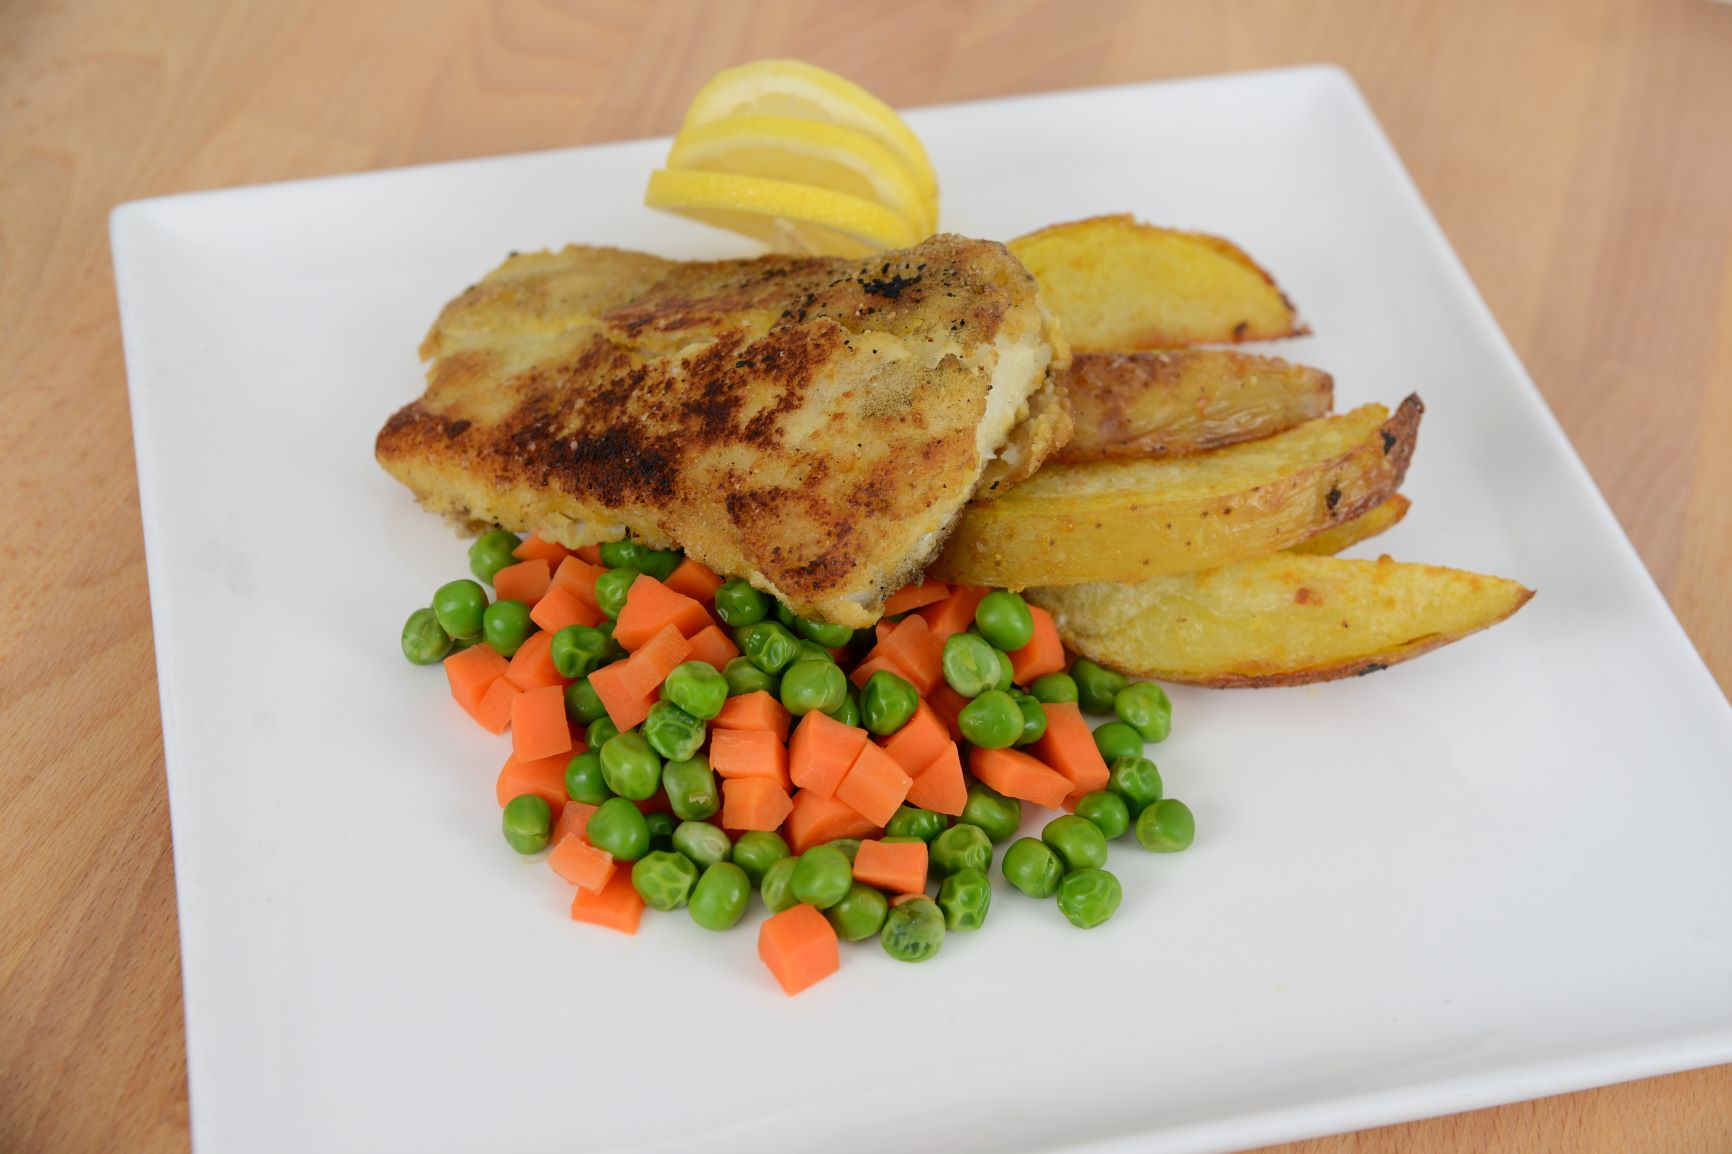 Gluten Free Cobia & Chips (Thursday 4/22 Delivery)